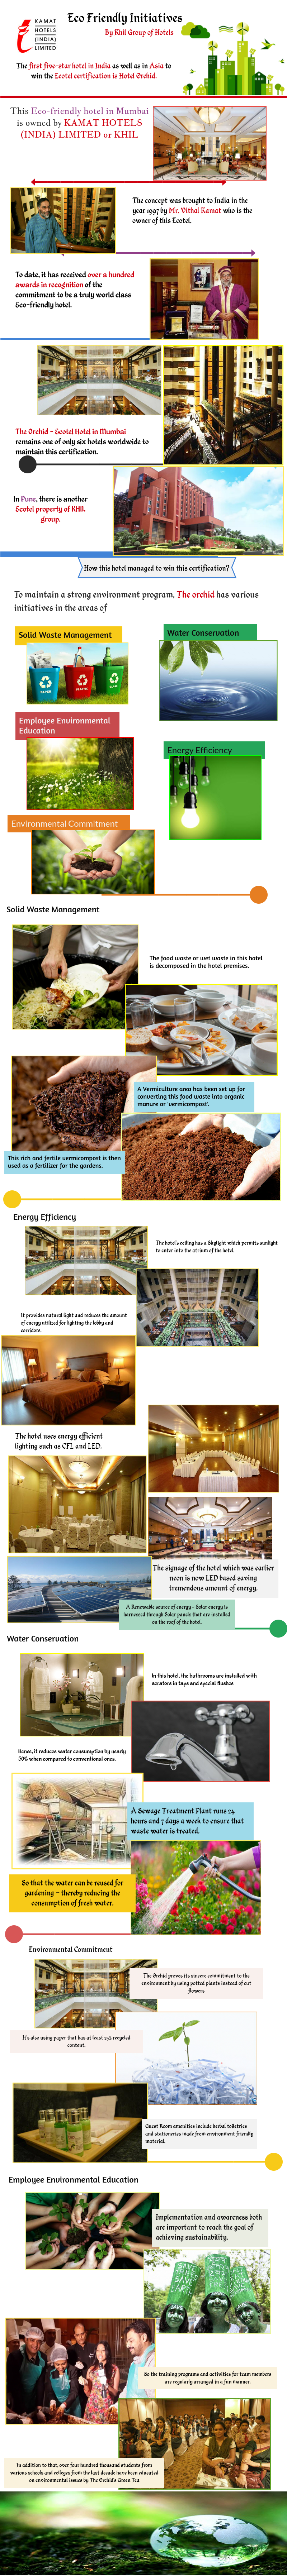 The Eco-friendly hotel concept was brought to India in the year 1997 by Mr. Vithal Kamat through Hotel Orchid. It's the first 5-star hotel to receive Ecotel certification in India as well as in Asia. To date, it has received 100+ awards in recognition of the commitment to be a truly world-class Eco-friendly hotel. But, how this hotel managed to achieve such a great feat? Check this beautiful infographics to know the Eco-friendly initiatives taken by KHIL group of hotels. http://www.khil.com/